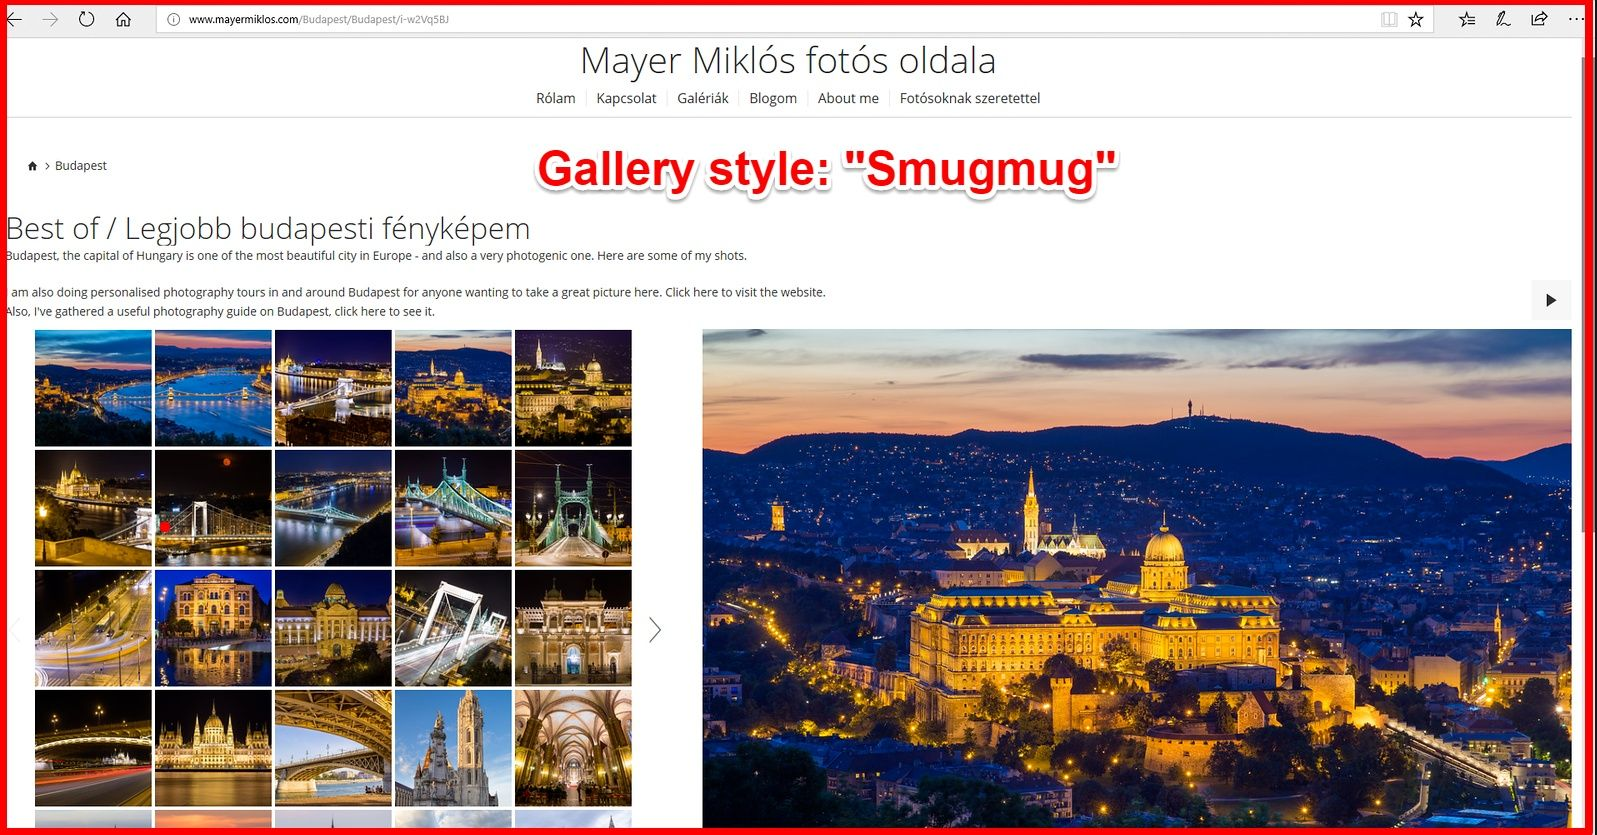 Smugmug style galleries